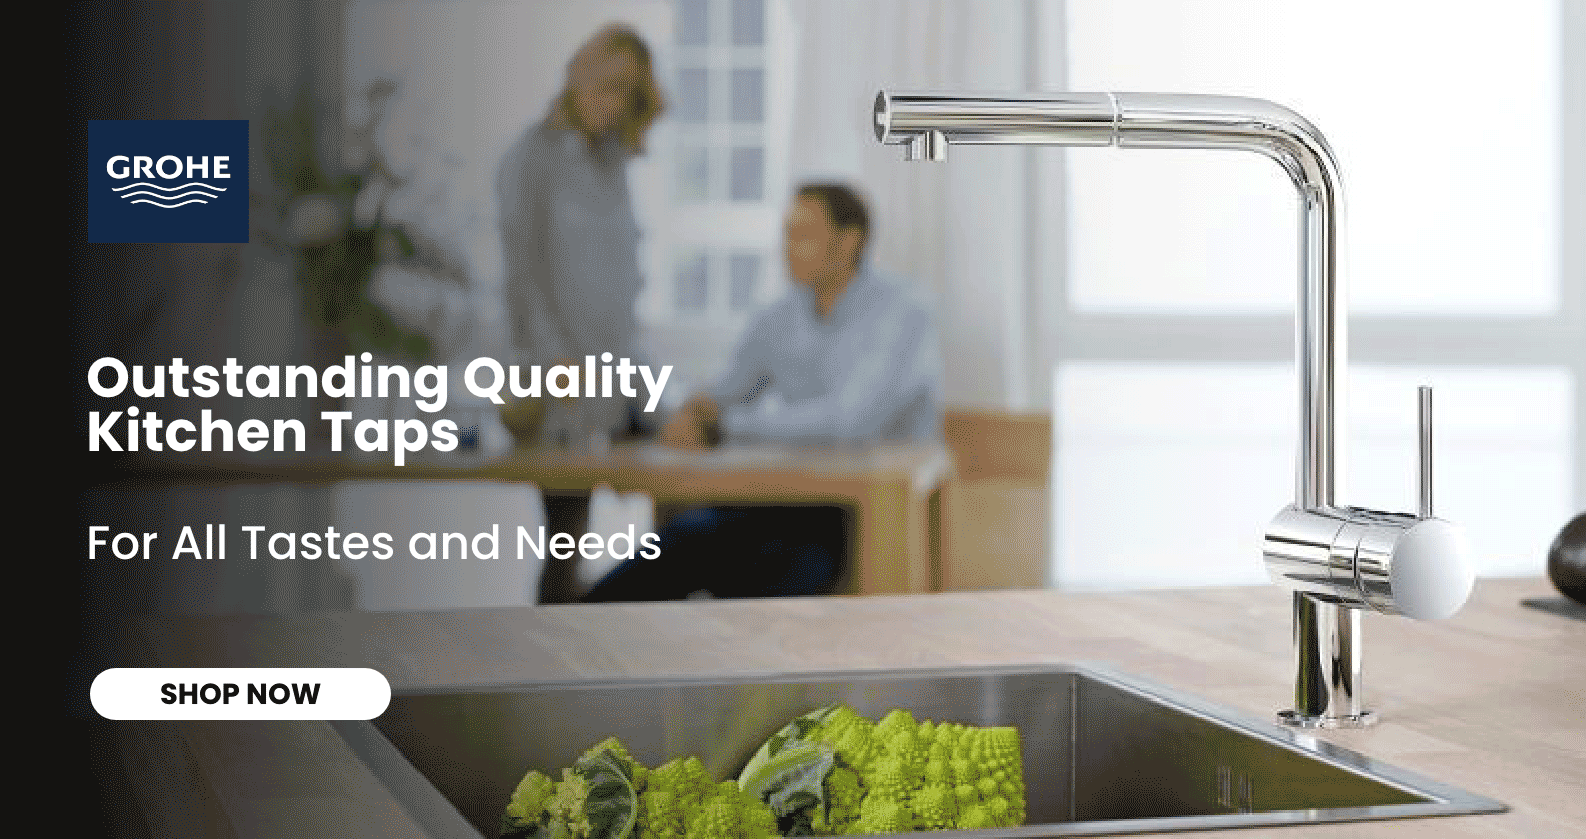 GROHE Kitchen Taps of Outstanding Quality at xTWOstore